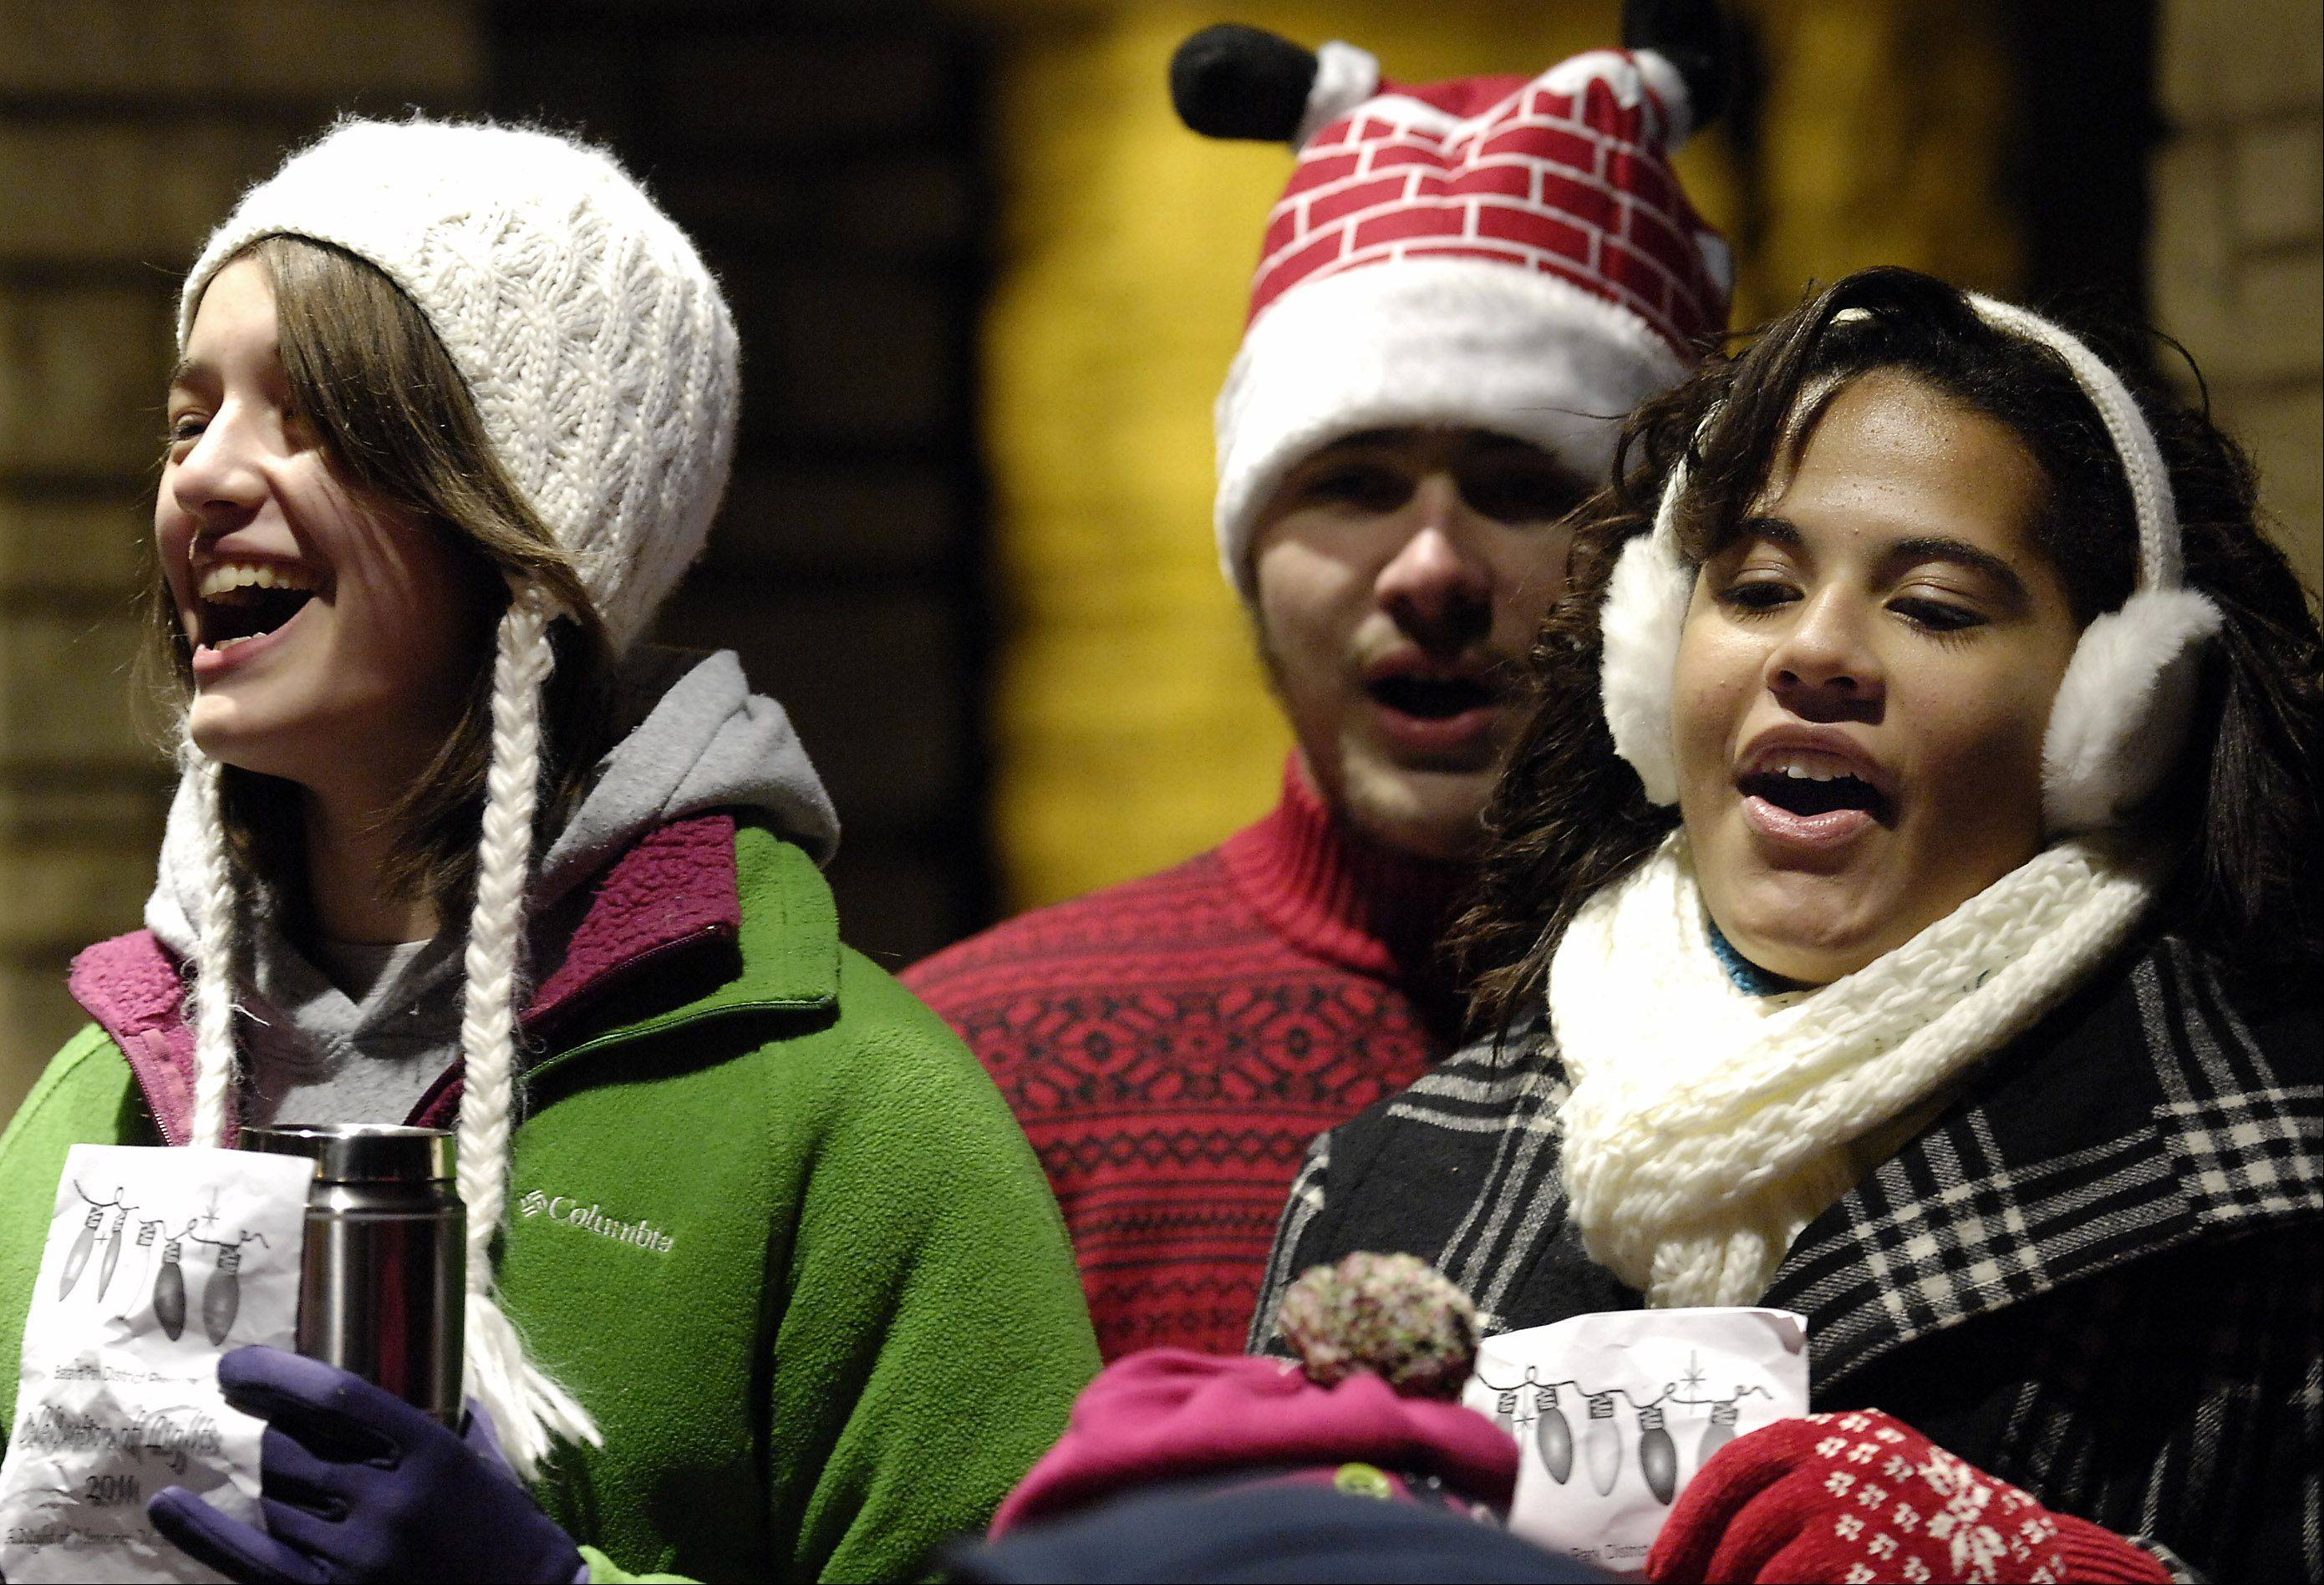 Join the community singalong and tree lighting ceremony at the annual Celebration of Lights Sunday in Batavia.